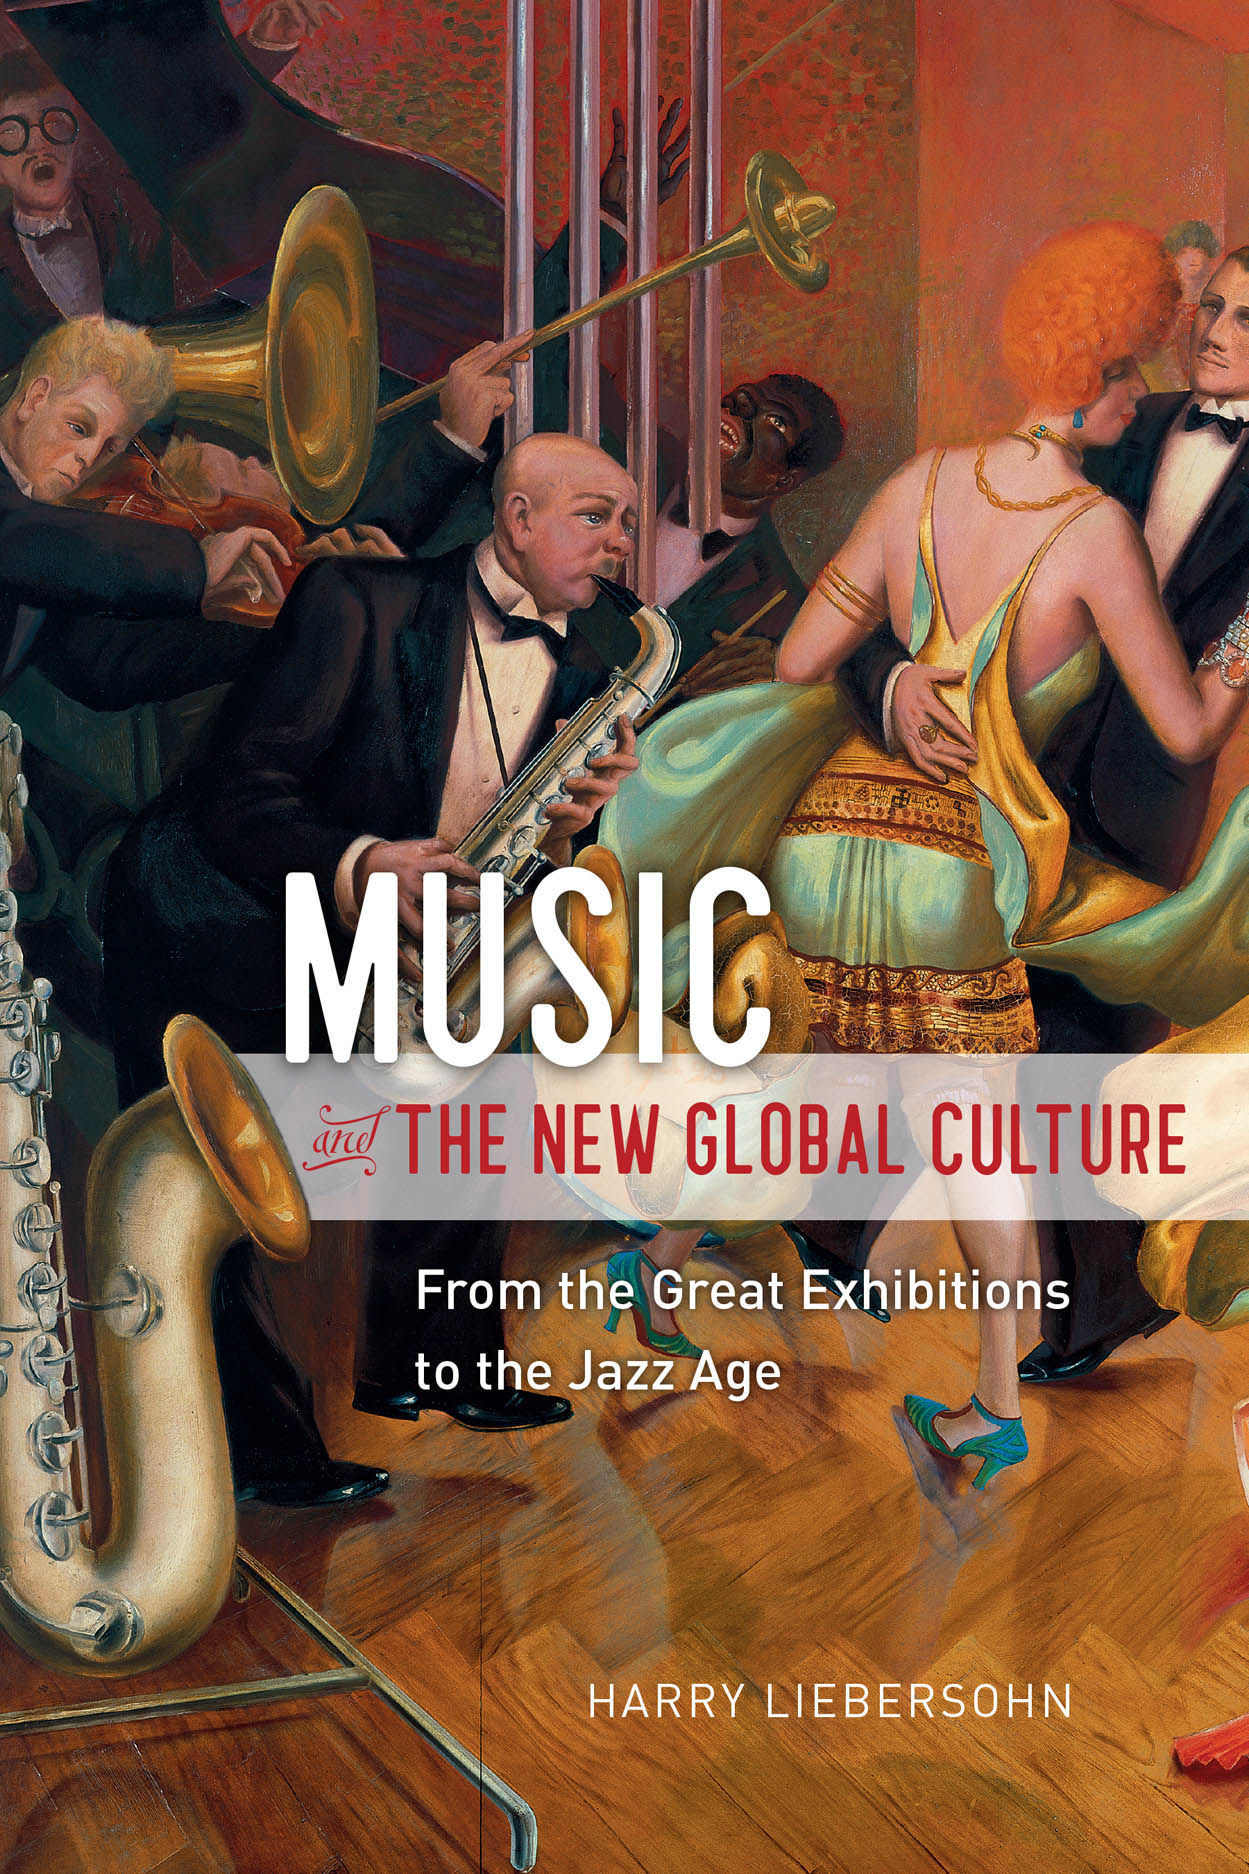 Music and the New Global Culture: From the Great Exhibitions to the Jazz Age